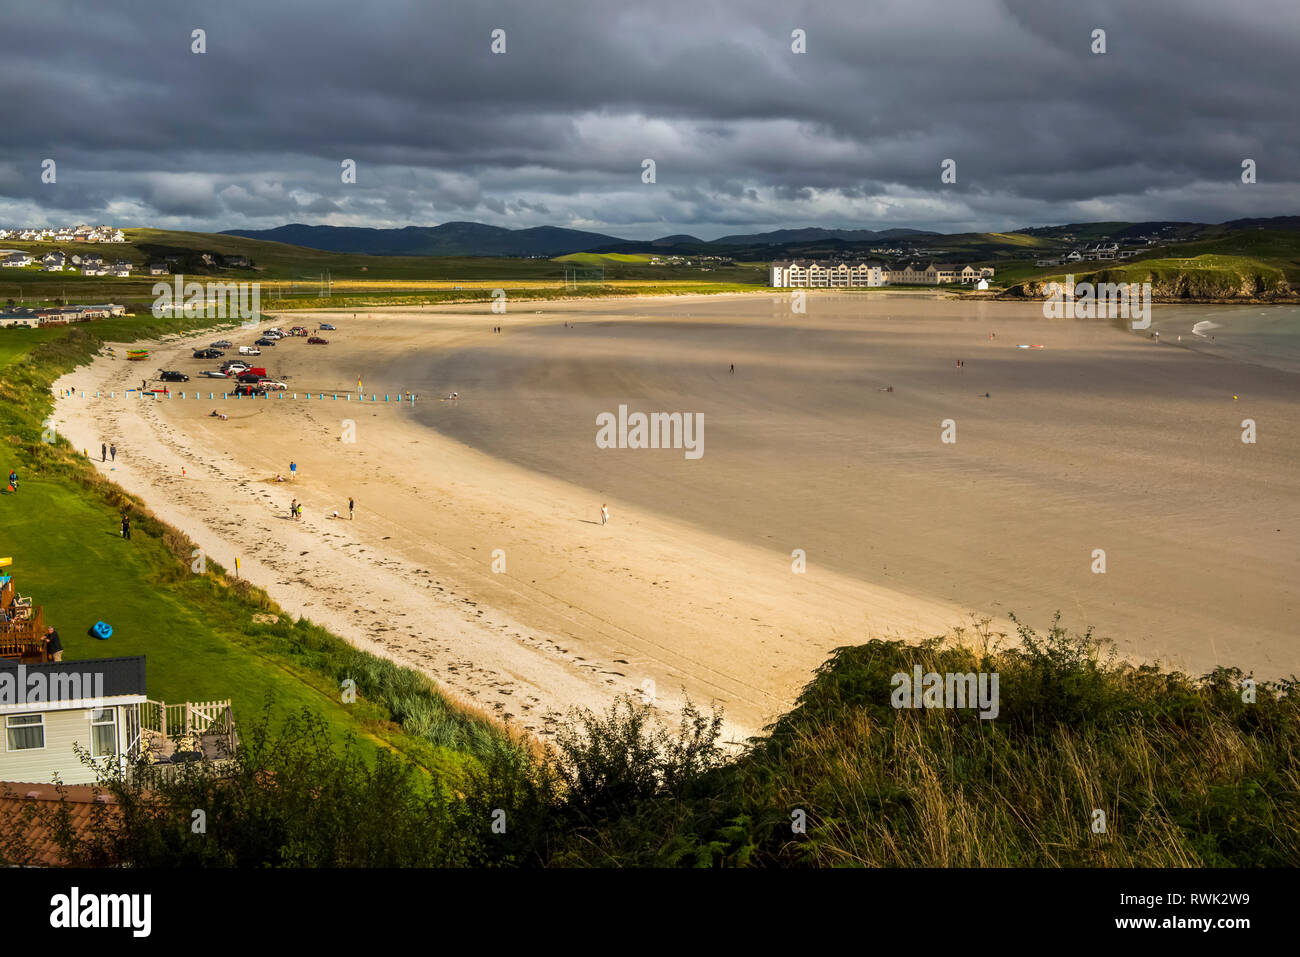 Beach along the coast of Northern Ireland in Sheephaven Bay; Downings, County Donegal, Ireland - Stock Image